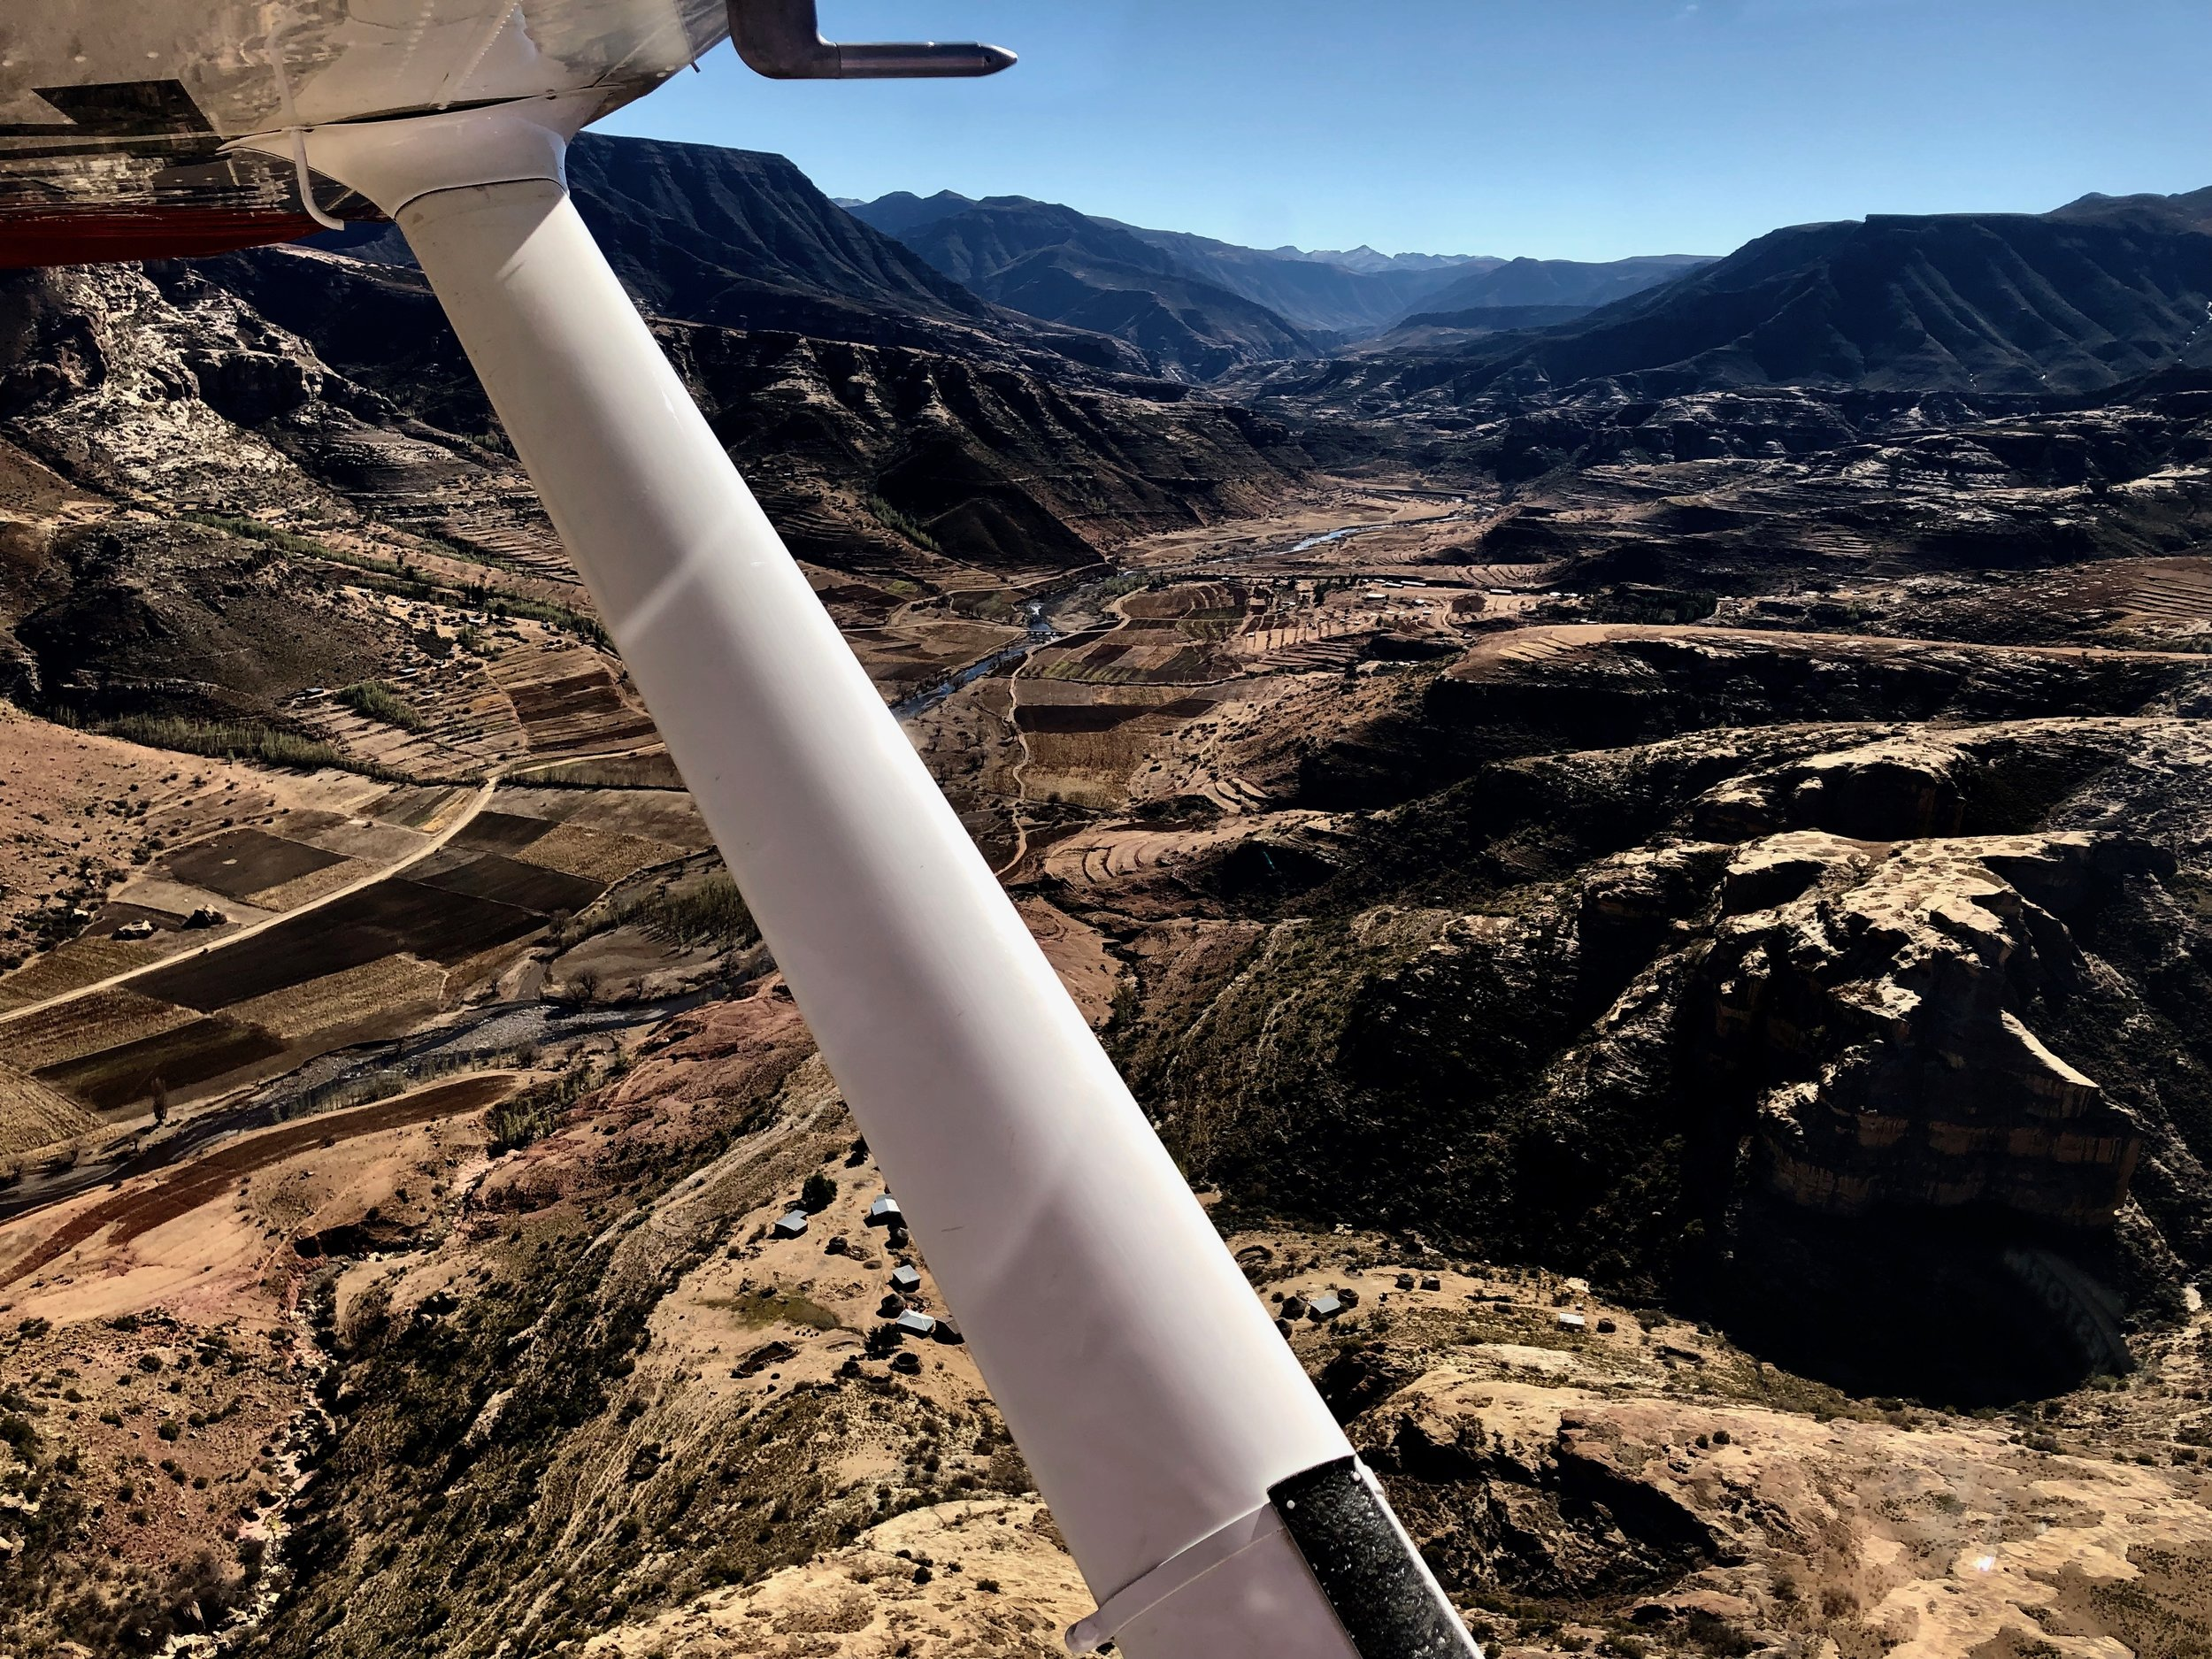 Airborne from Nohana (pic taken on a different occasion)